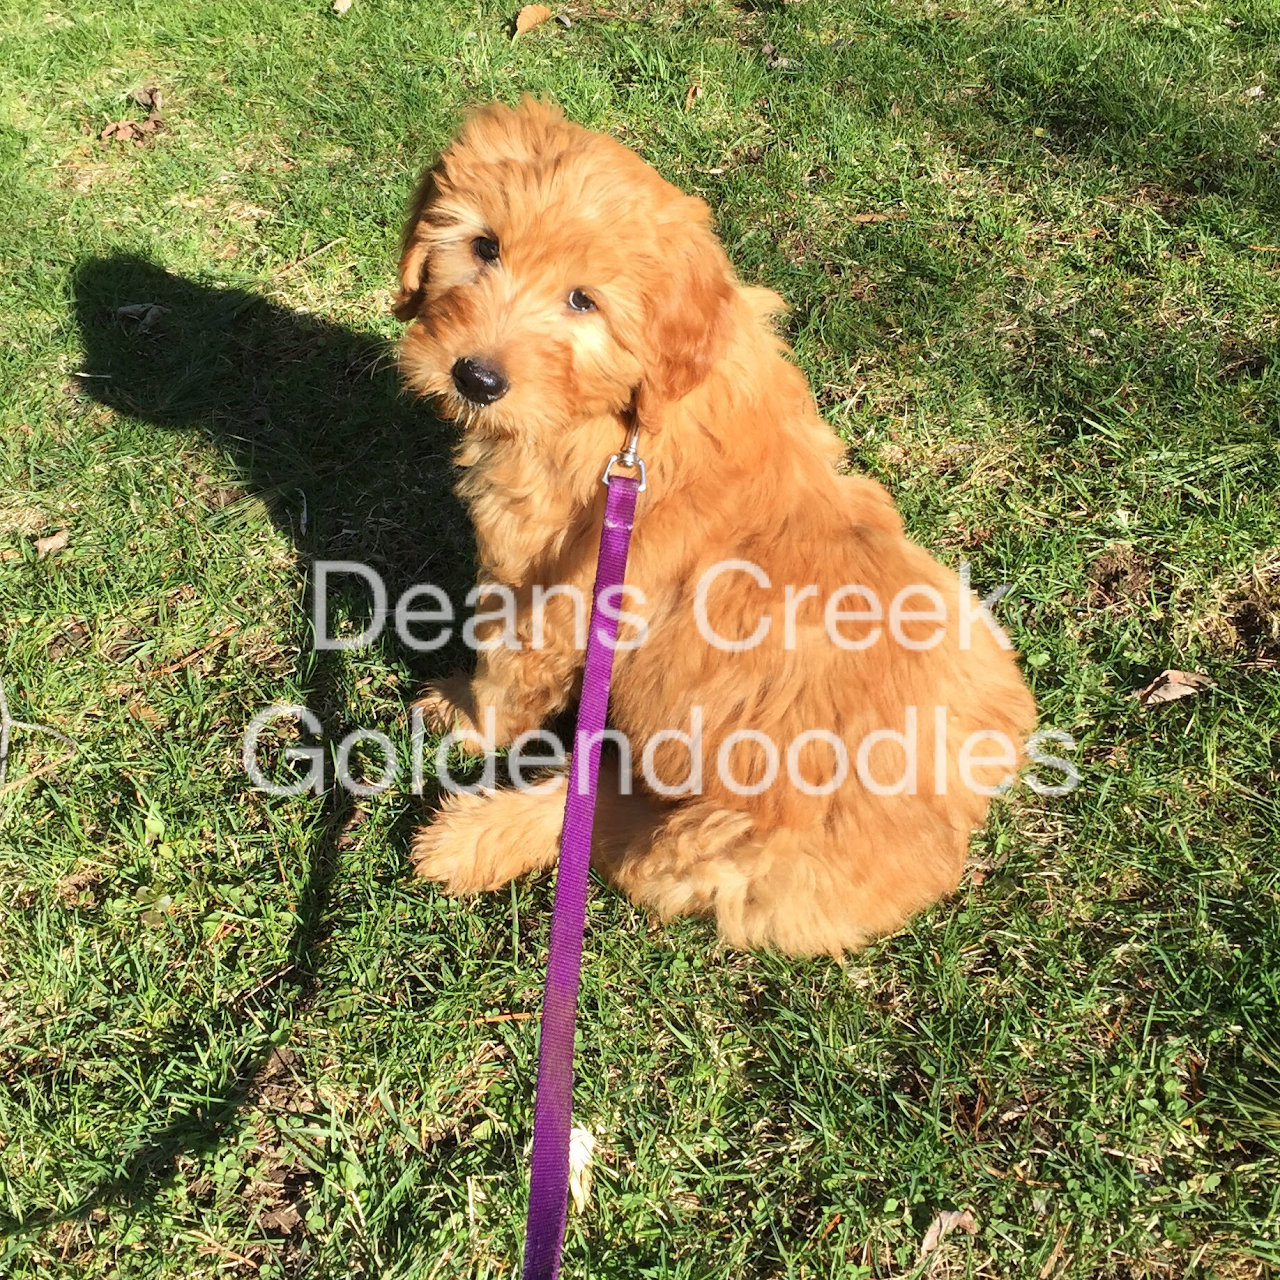 Deans Creek Doodles Goldendoodle Puppies Utica Rome